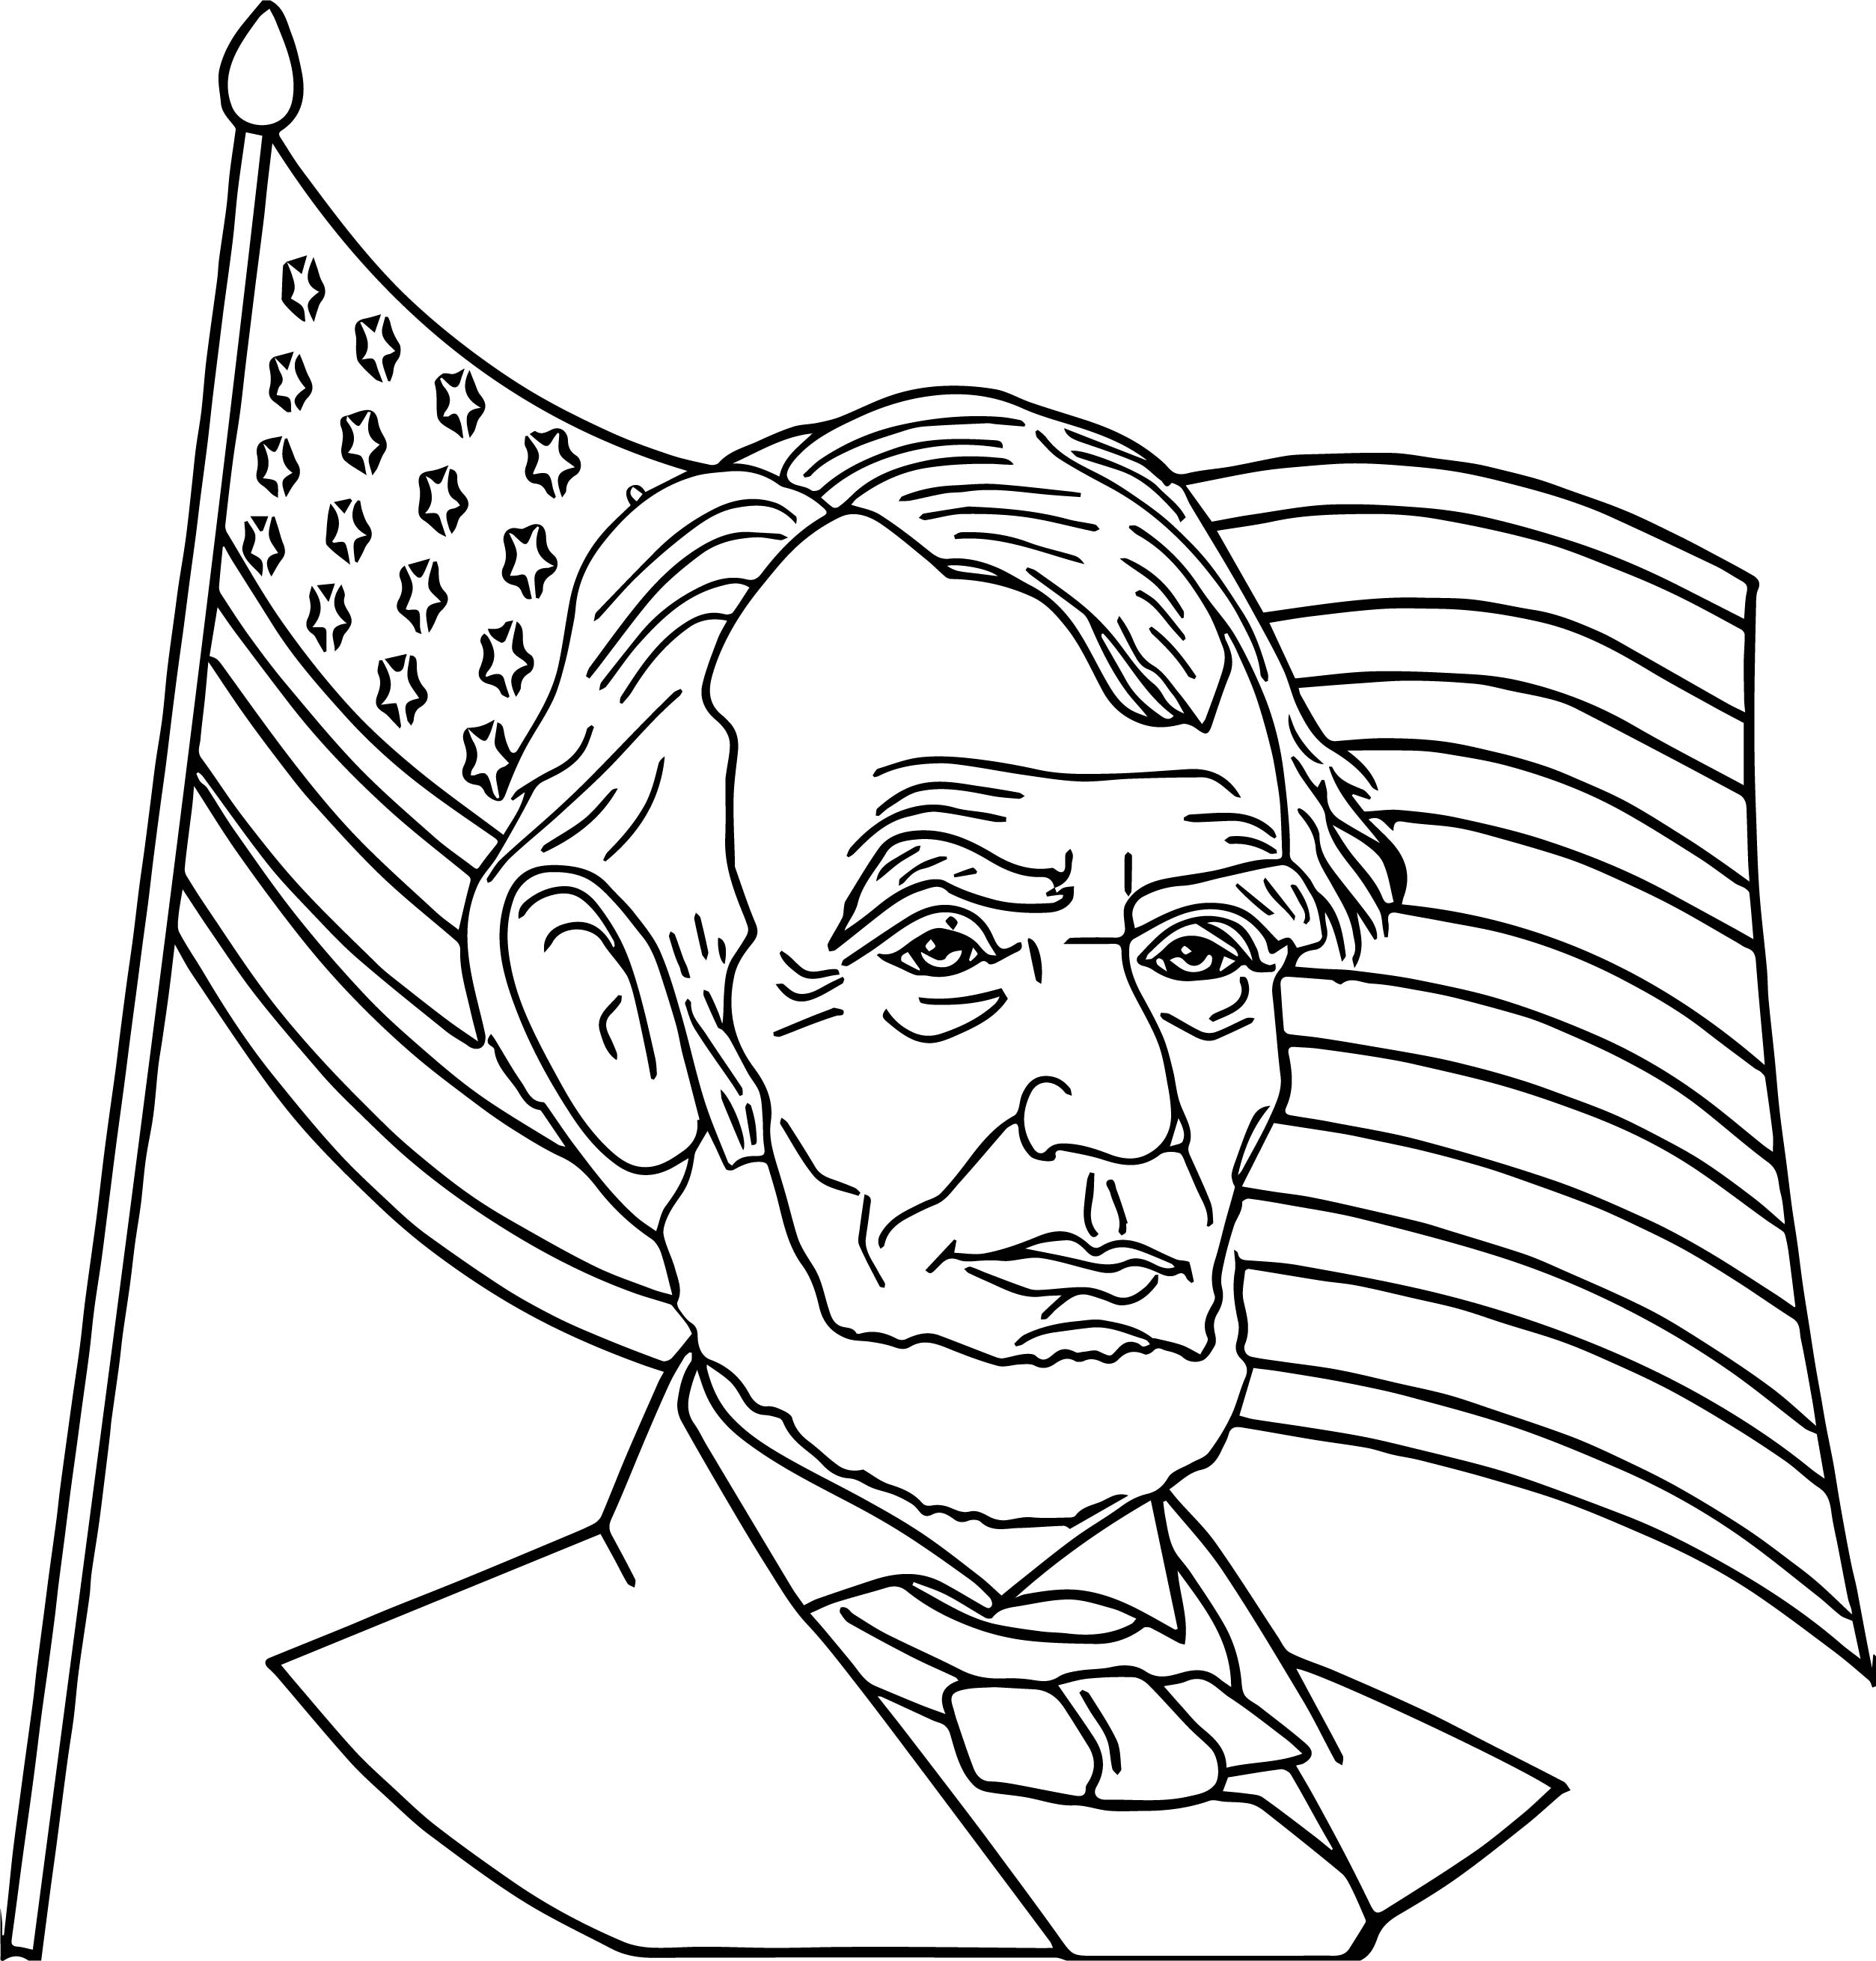 2507x2620 Abraham Lincoln Coloring Pages With Wallpapers Hd In Page Faba